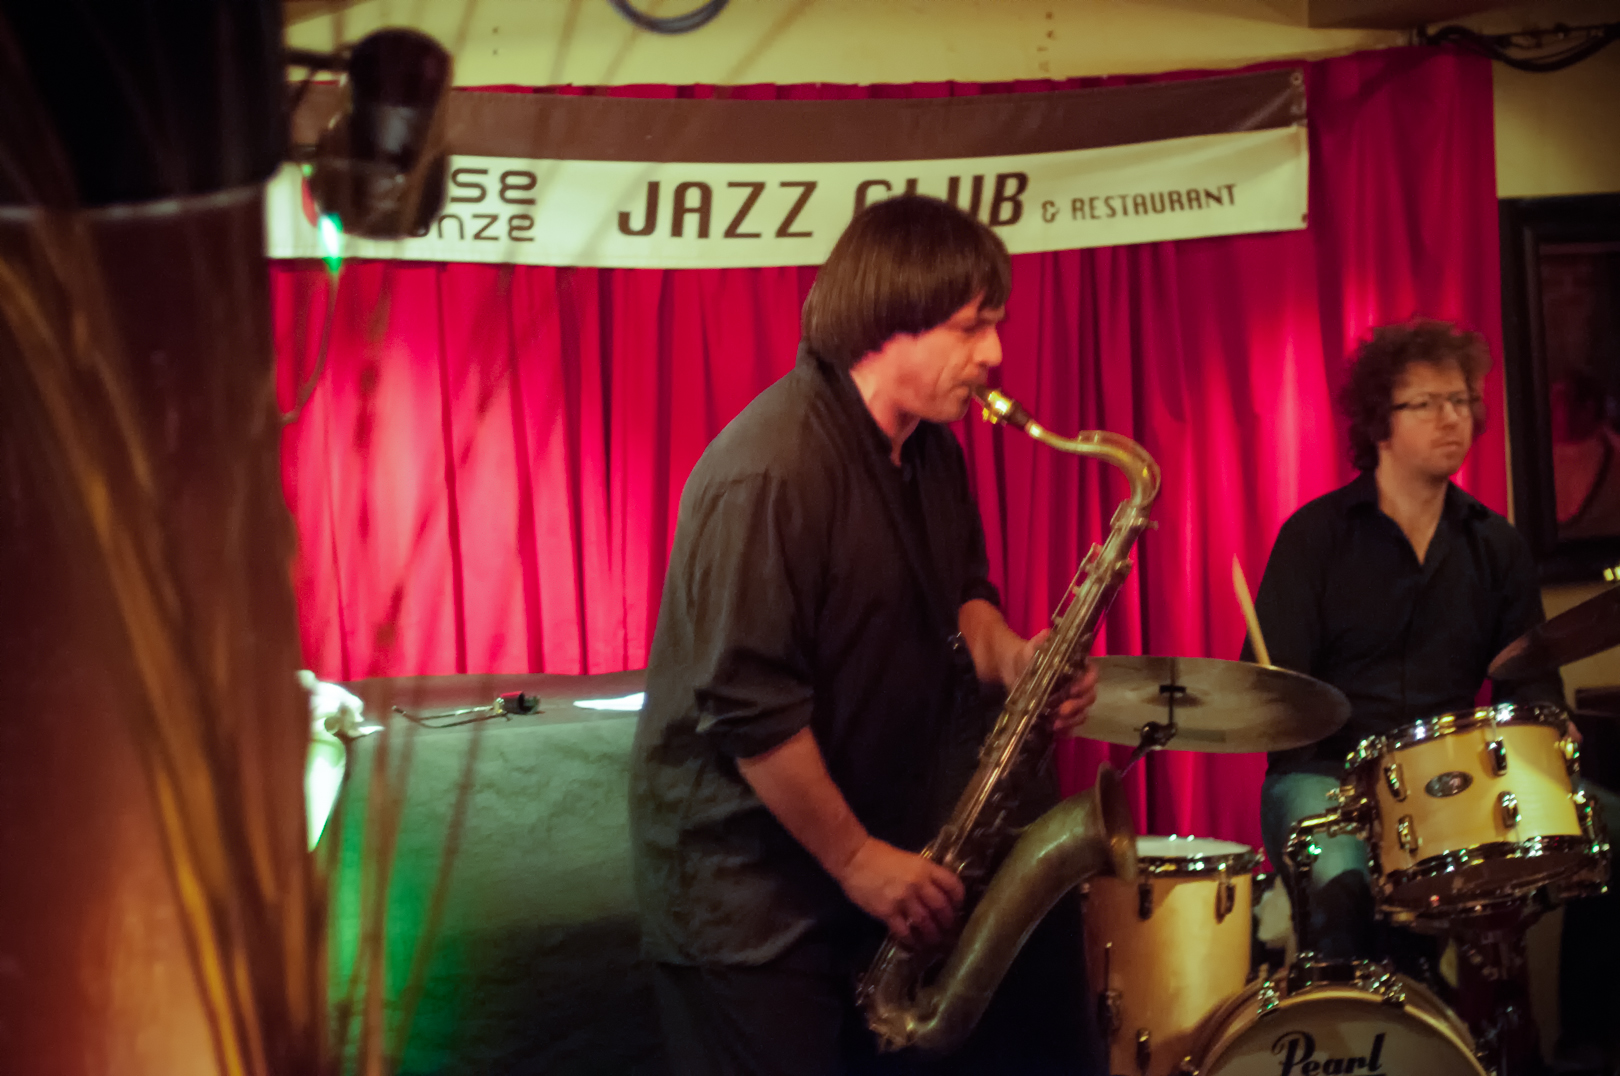 Yannick Rieu and Kevin Warren at Diese Onze in Montreal